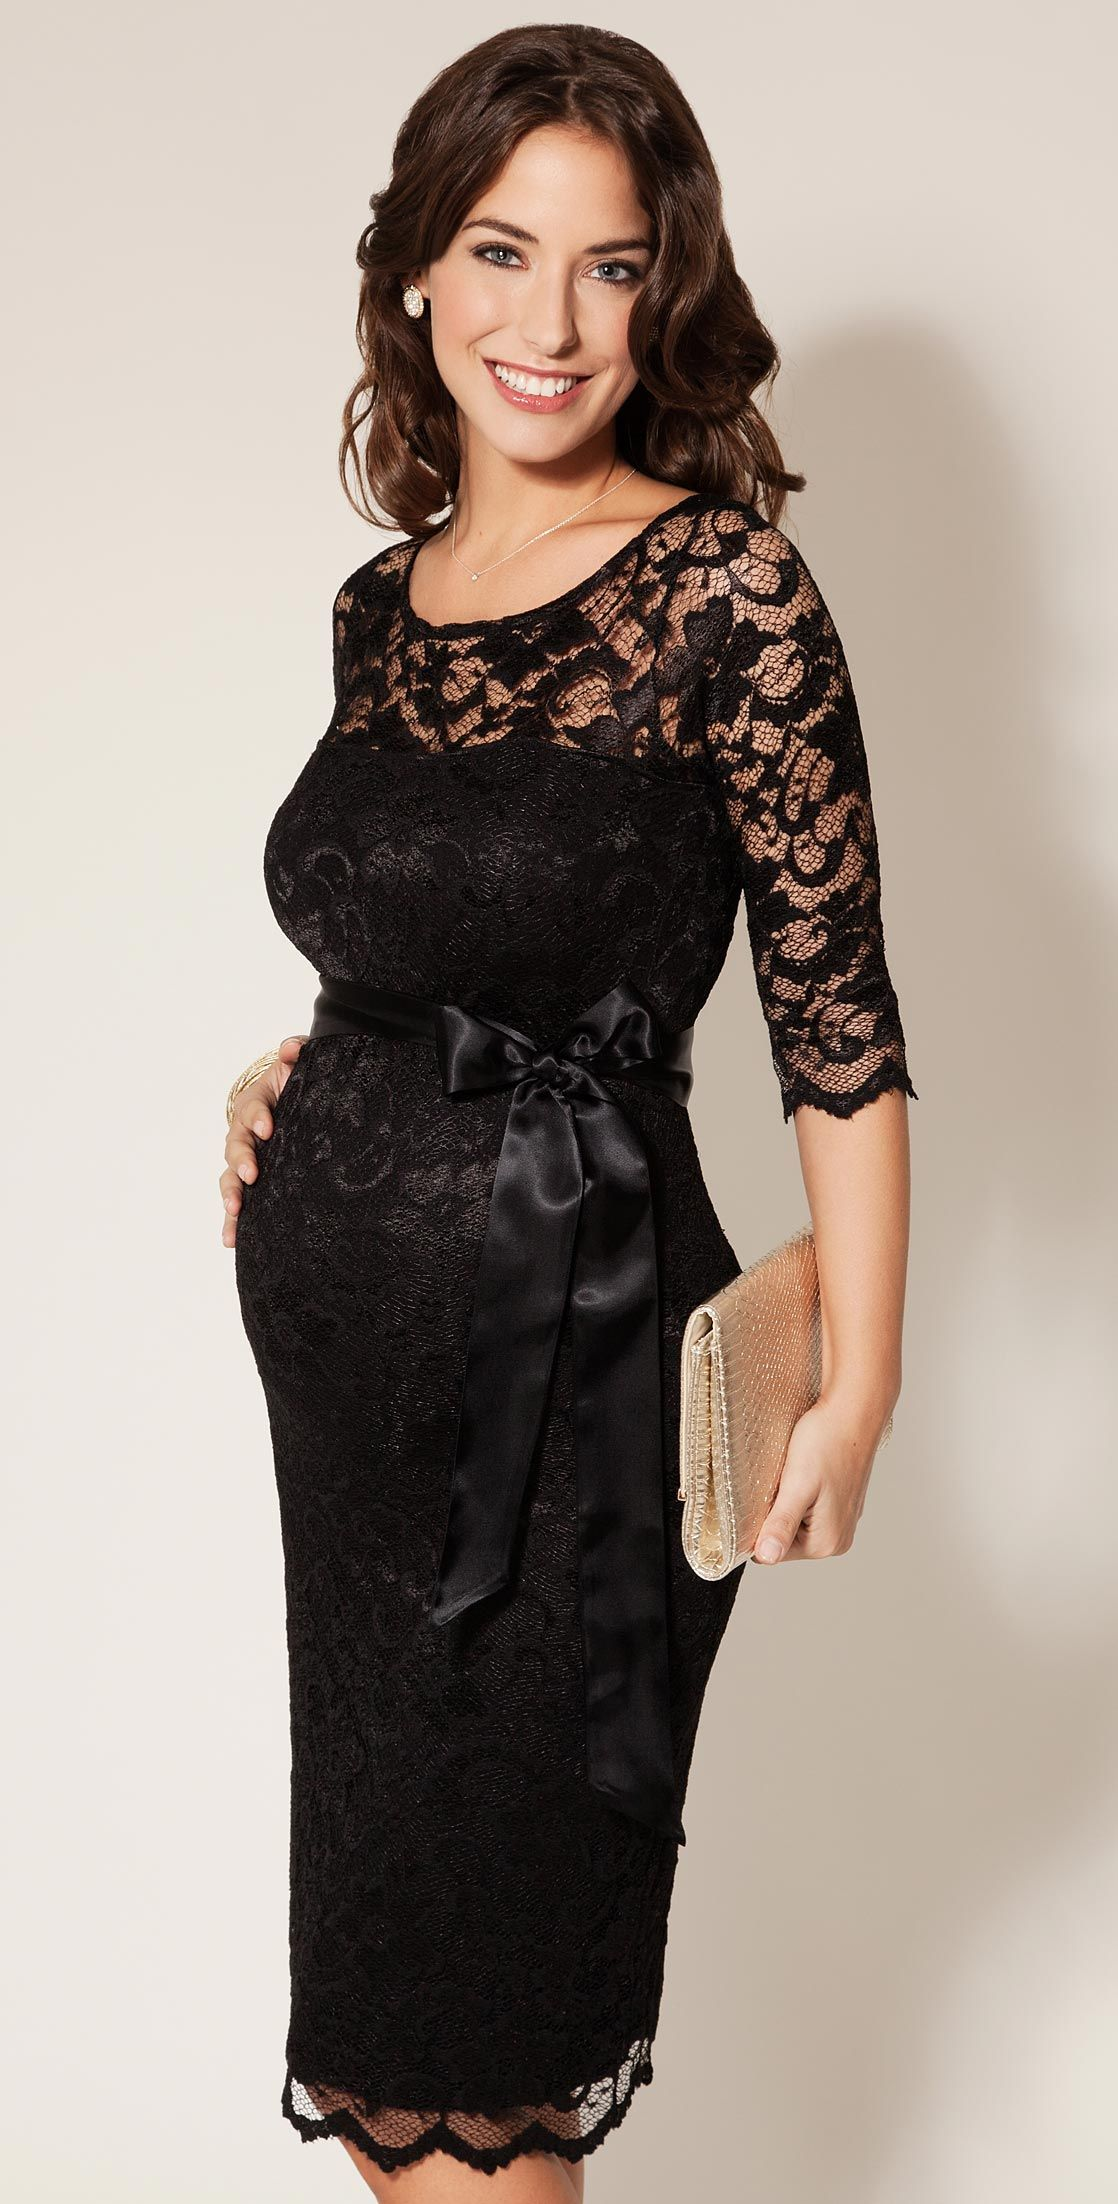 Maternity Dress Amelia Lace Short Black By Tiffany Rose Lbd Billionaire